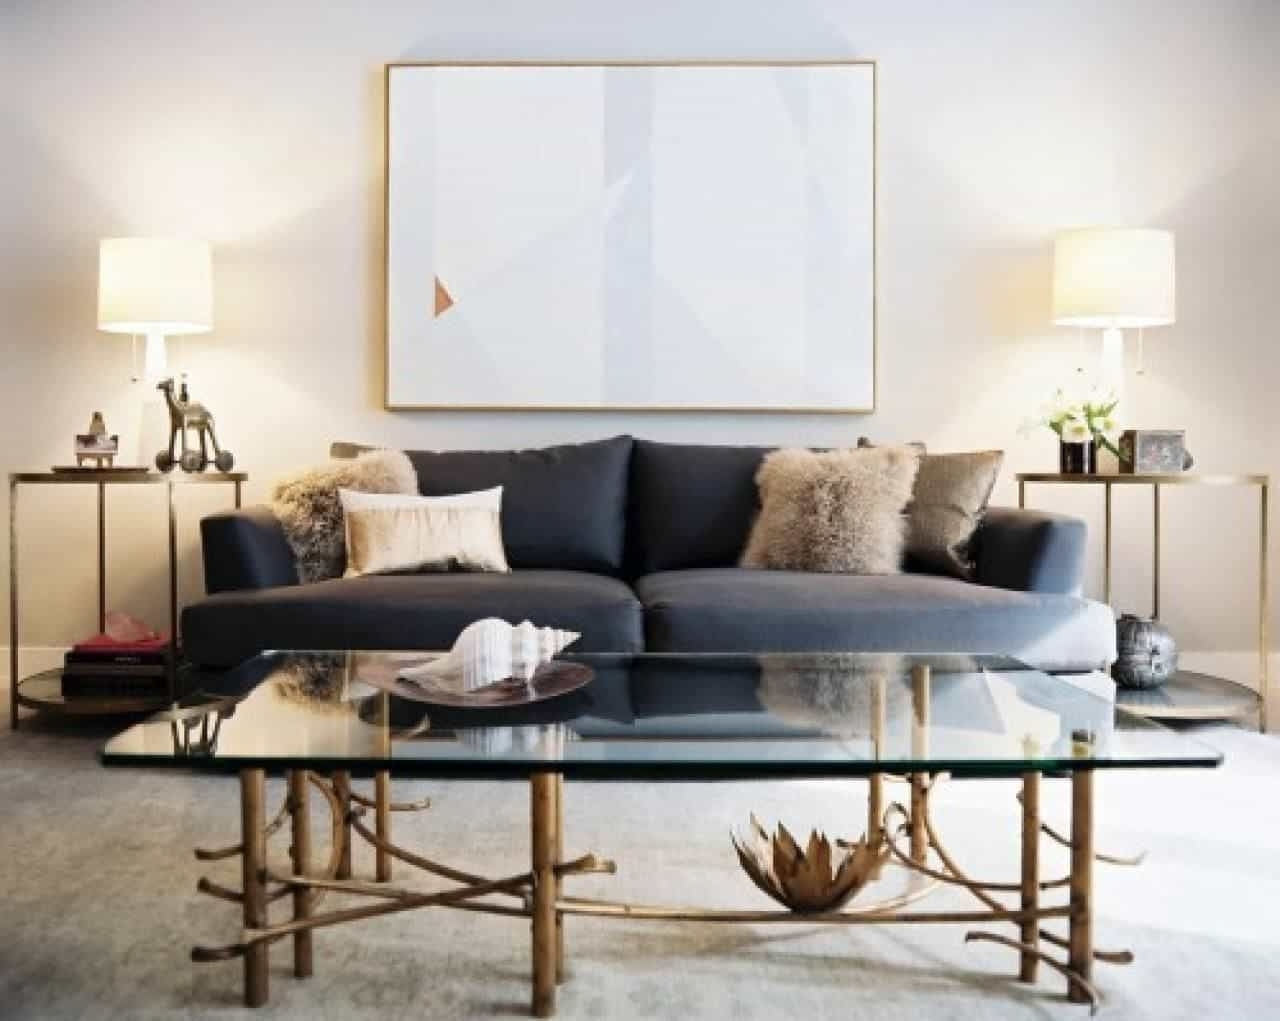 Famous Table Lamps For Modern Living Room Inside Modern Living Room With Grey Sofa And Side Tables With Table Lamps (View 16 of 20)